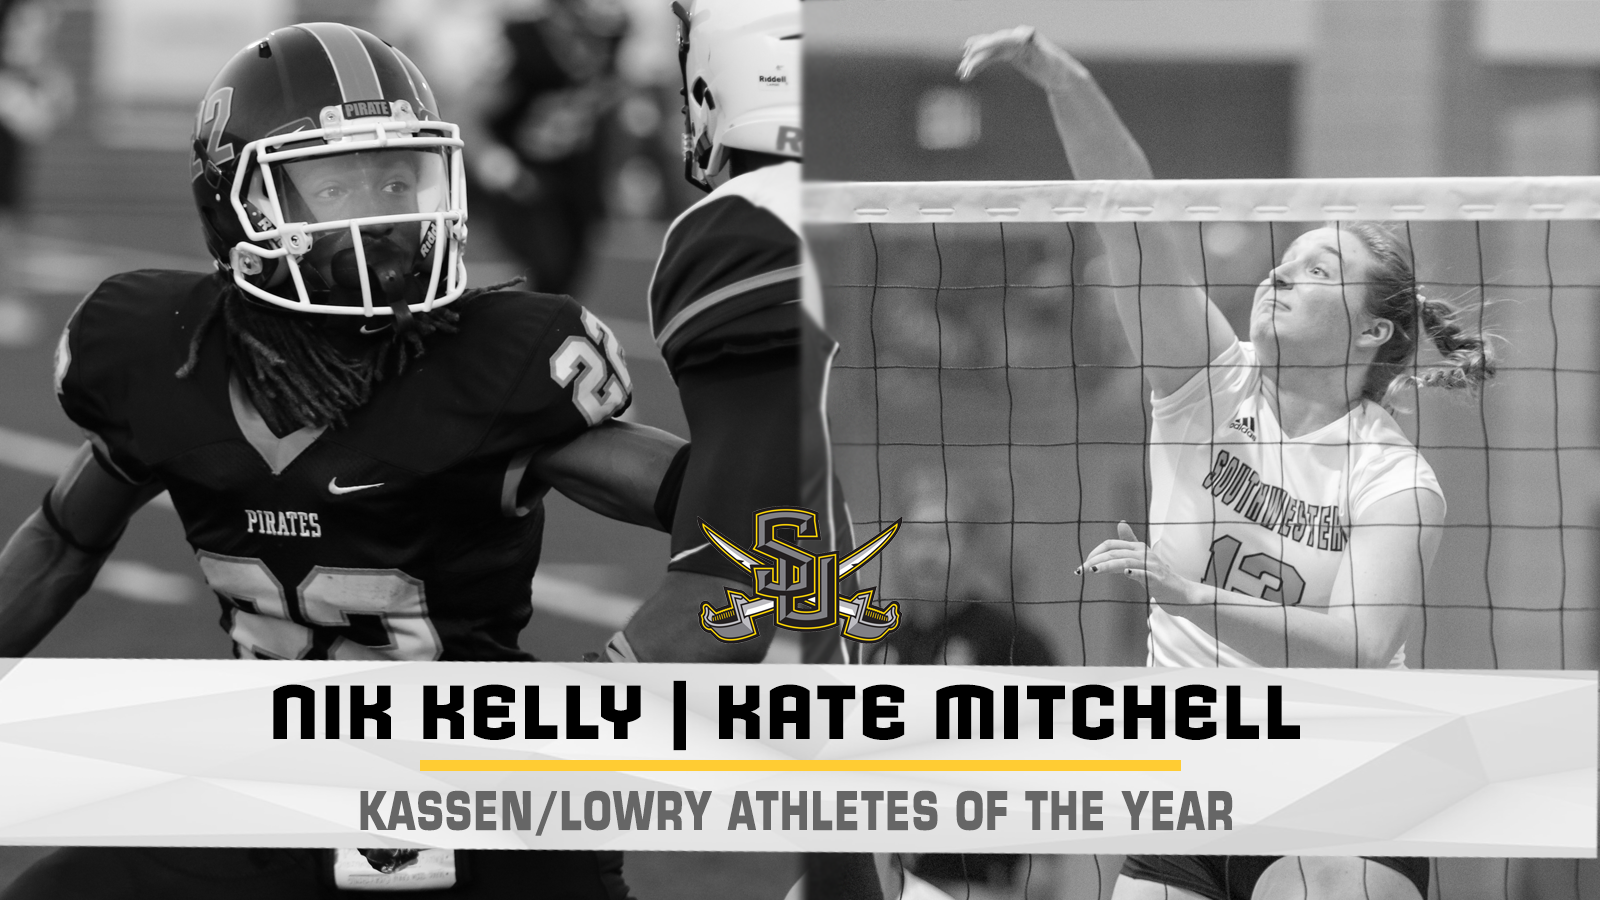 Kelly, Mitchell Named Kassen/Lowry Athletes of the Year